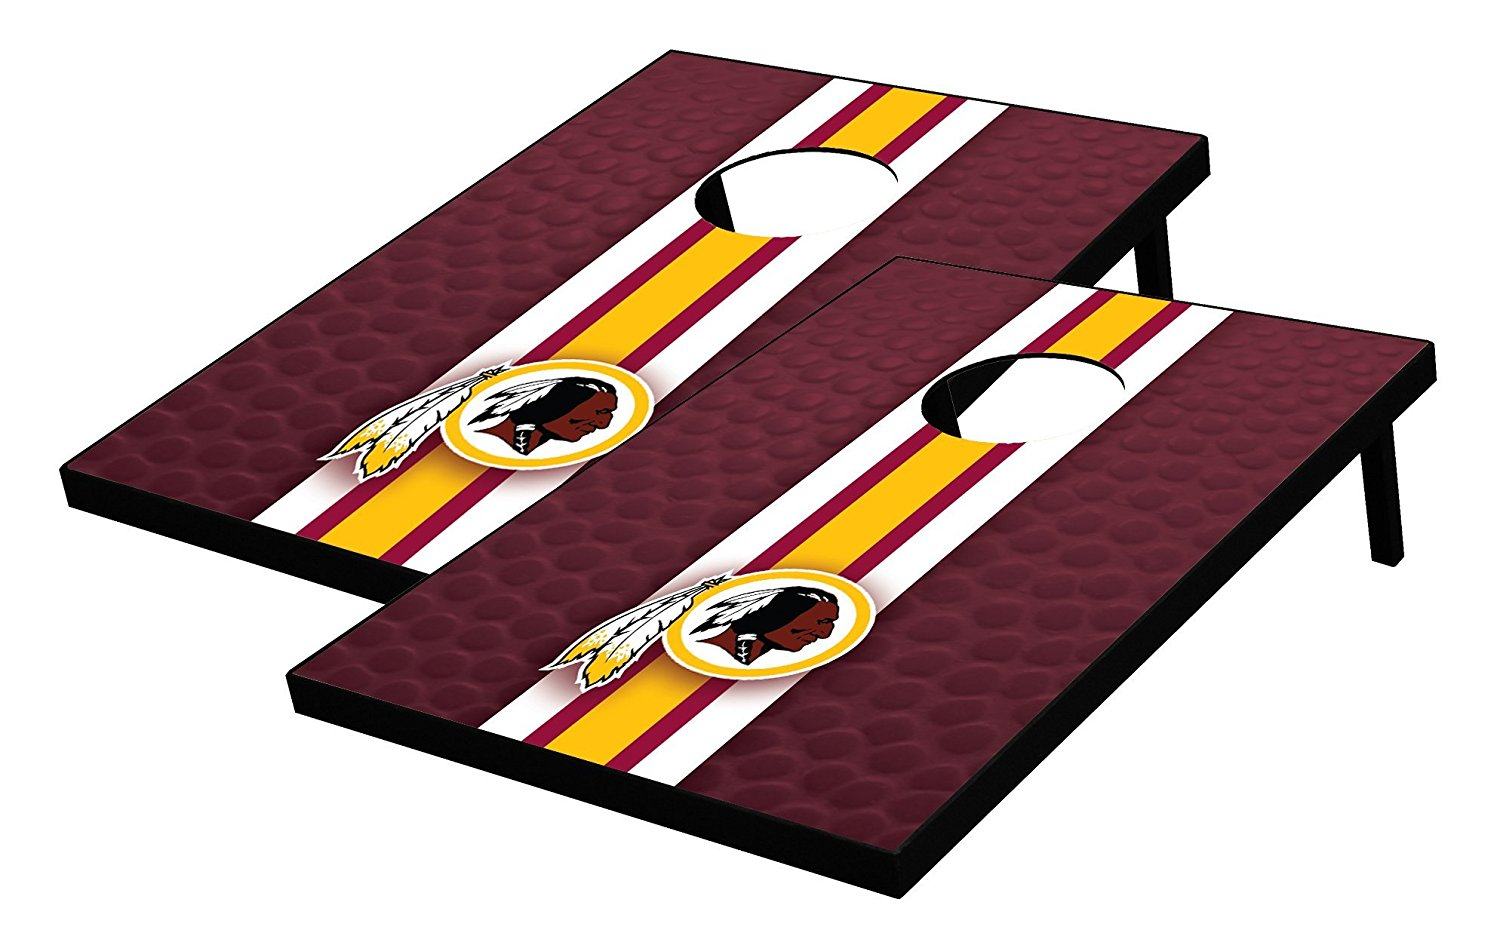 NFL Washington Redskins Tailgate Toss Bean Bag Game Set, Multicolor, One Size